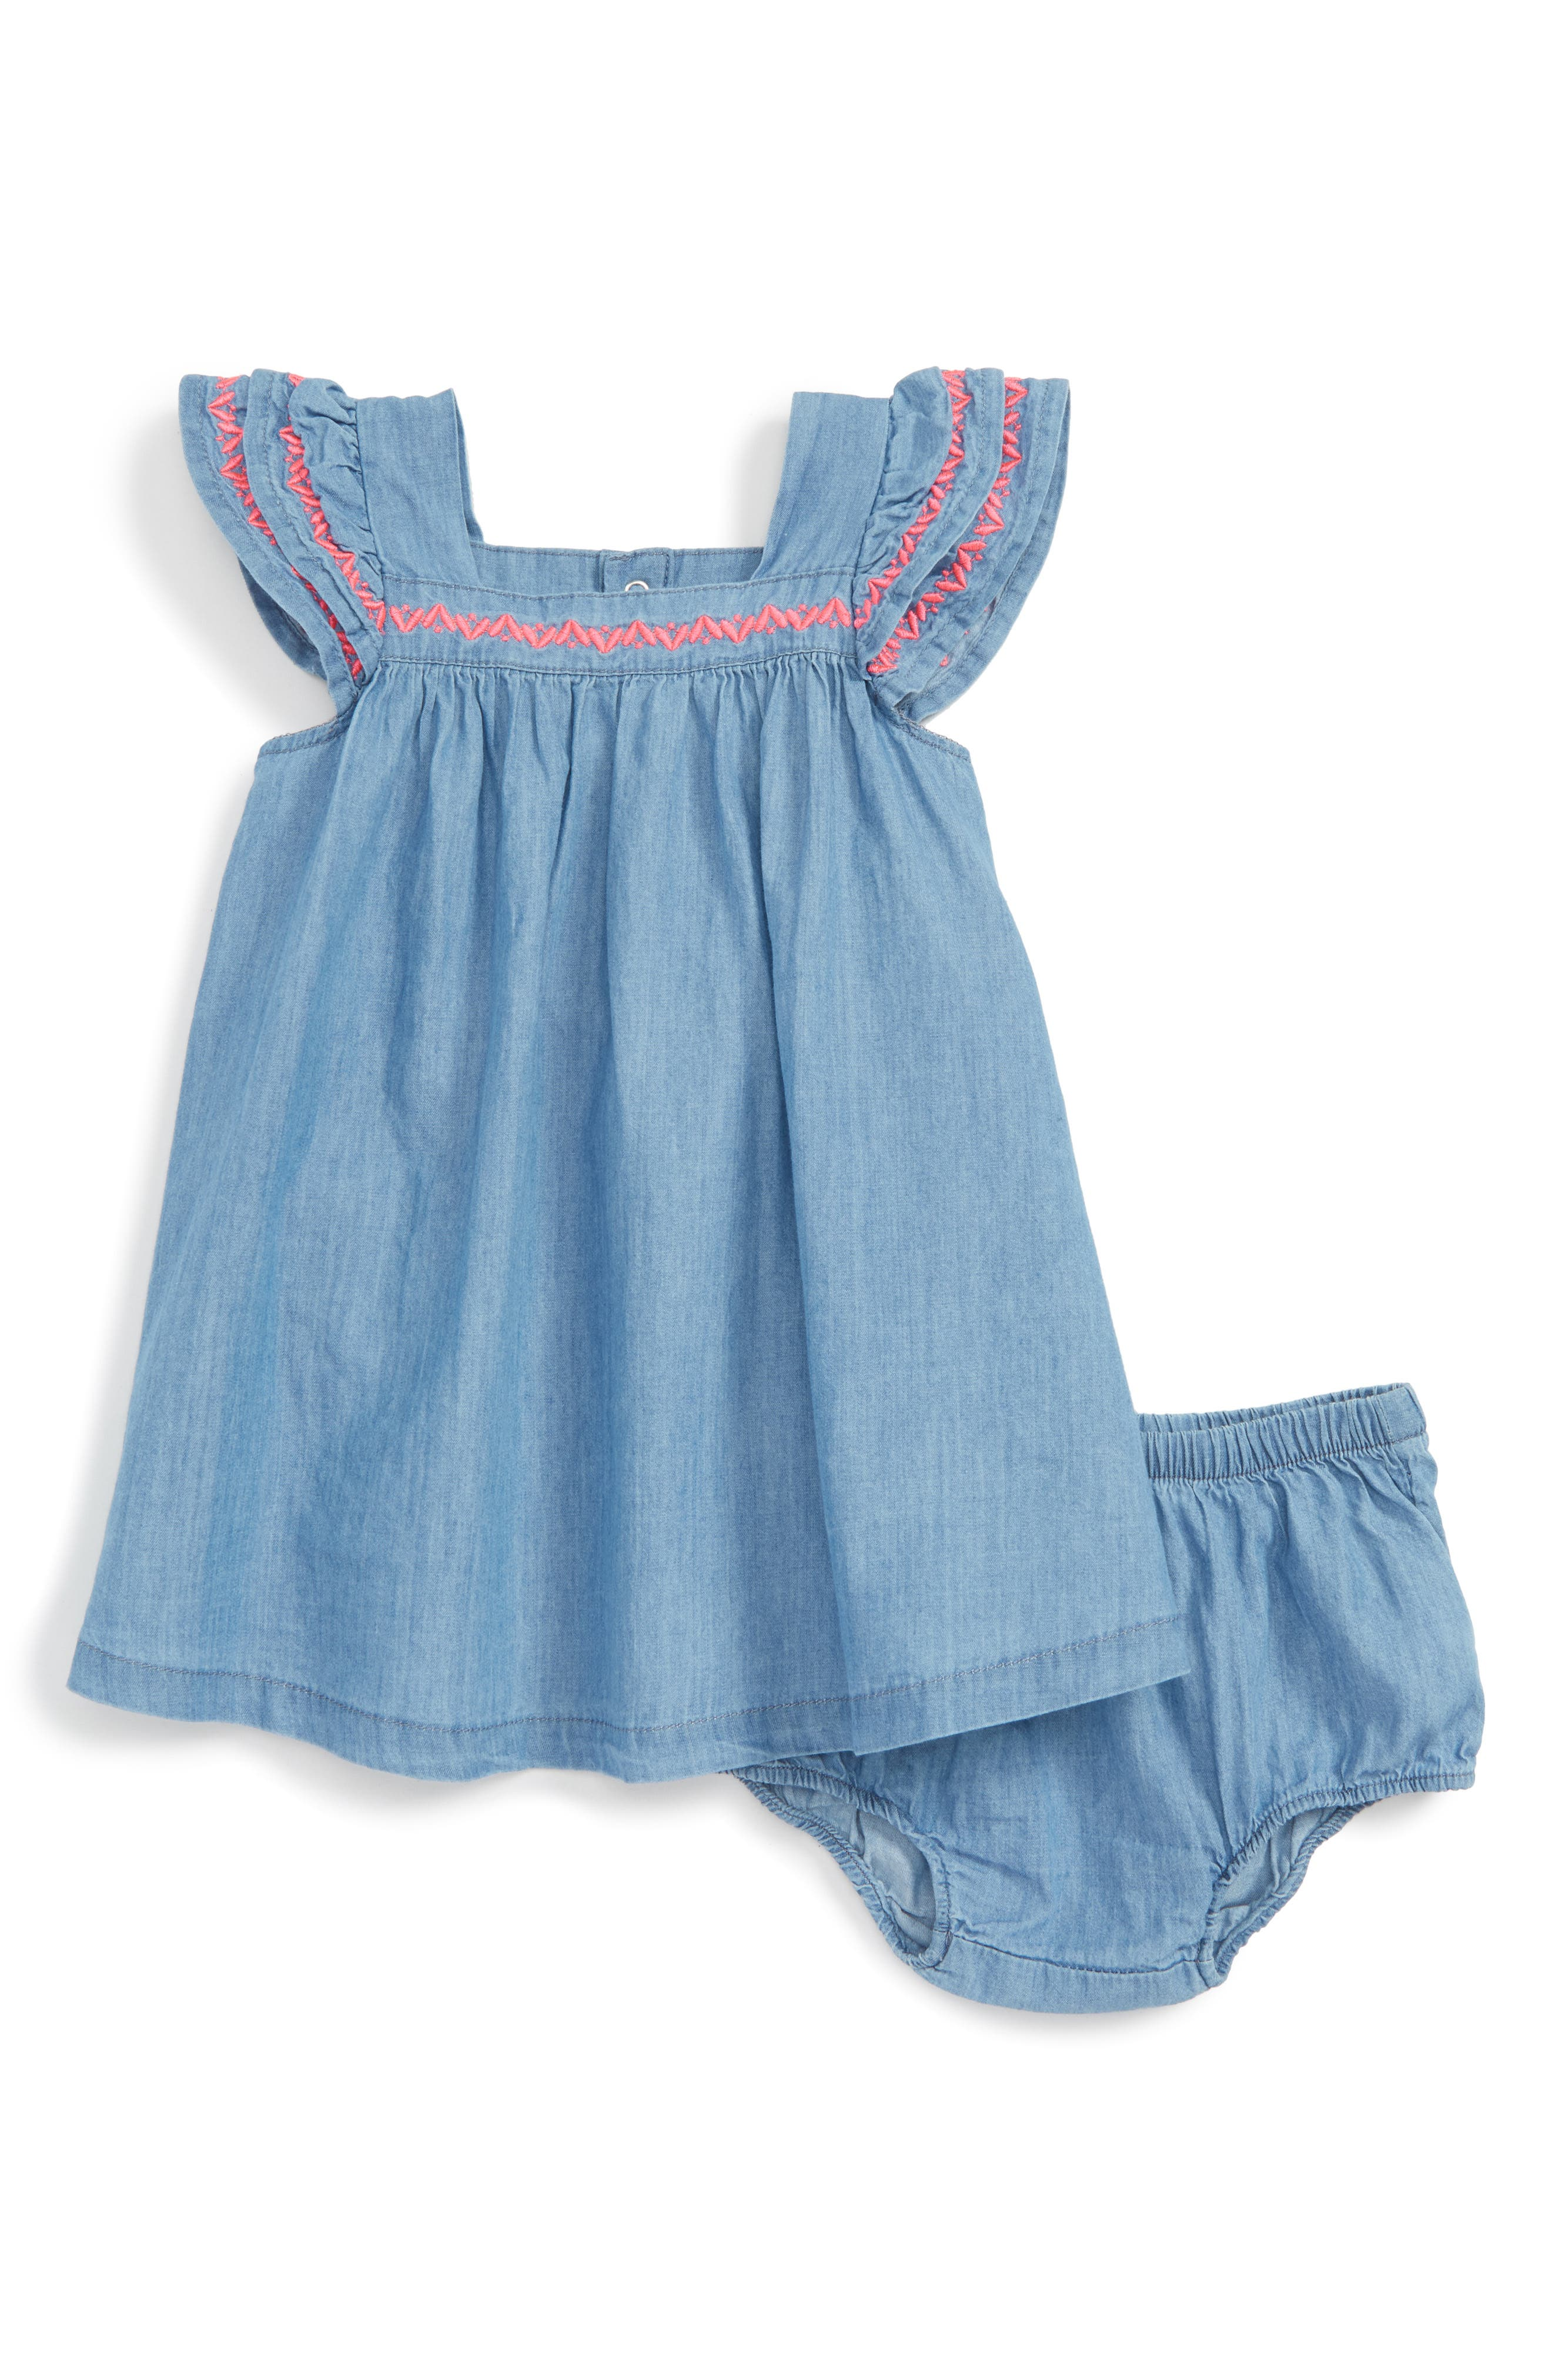 Tucker + Tate Chambray Dress (Baby Girls)